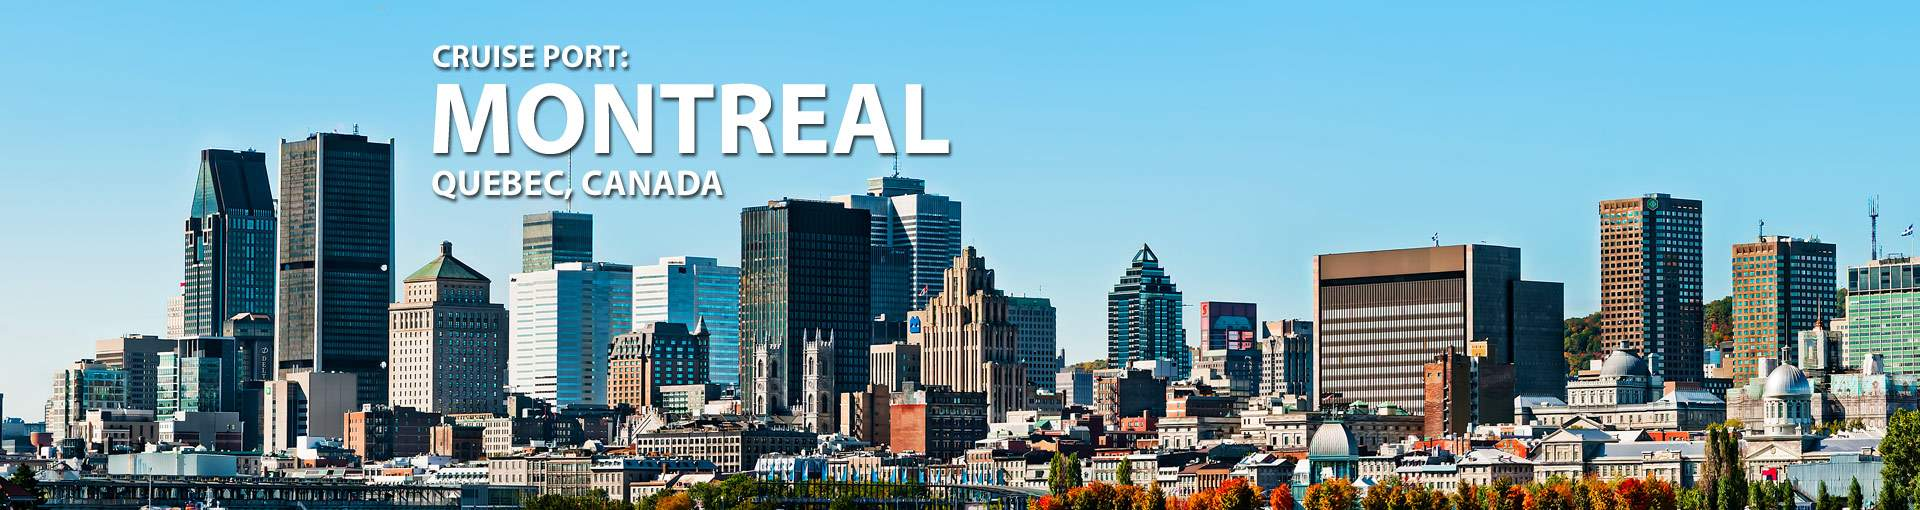 Cruises from Montreal, Quebec